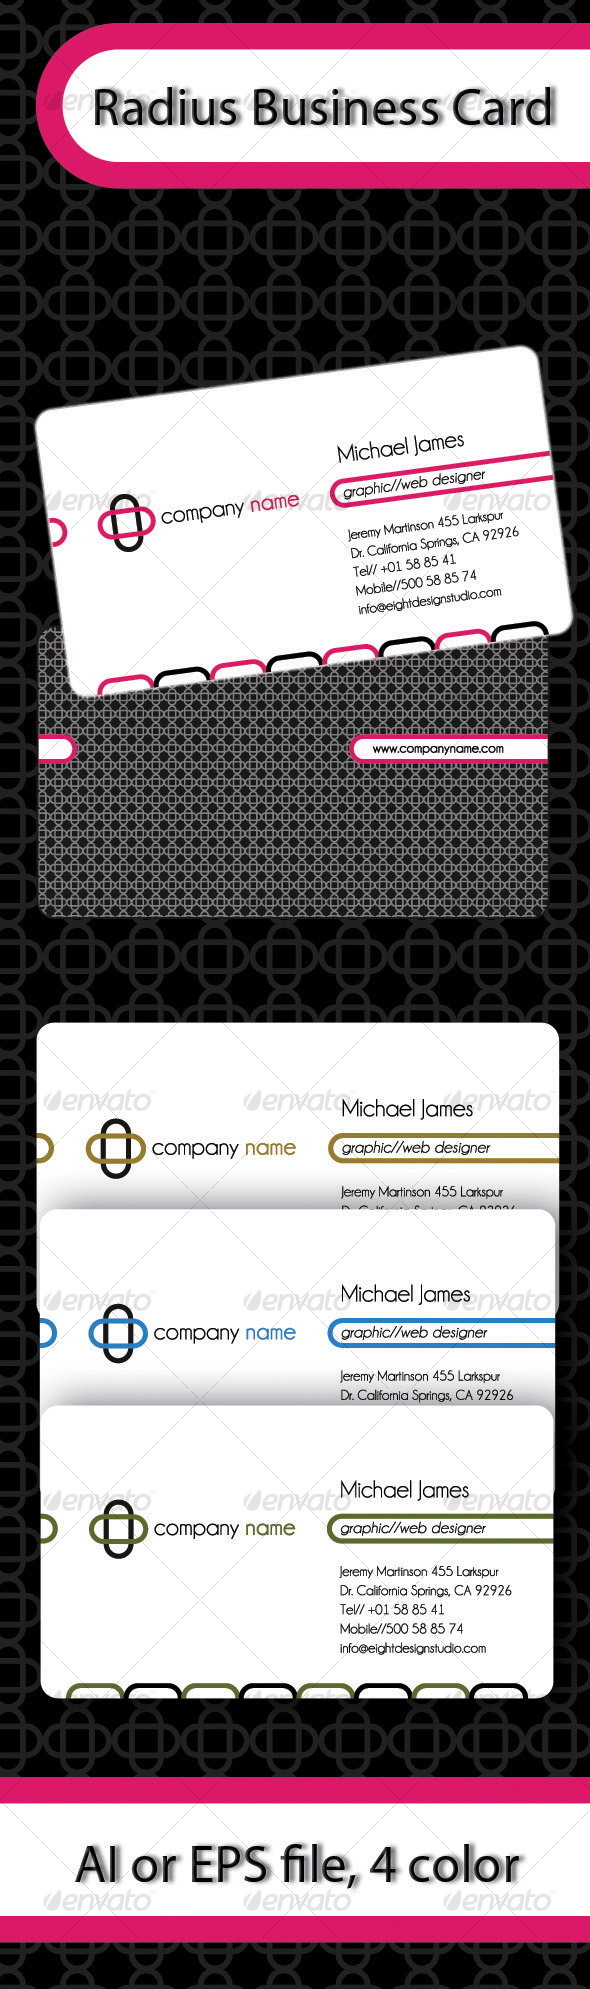 Radius Business Card - Corporate Business Cards